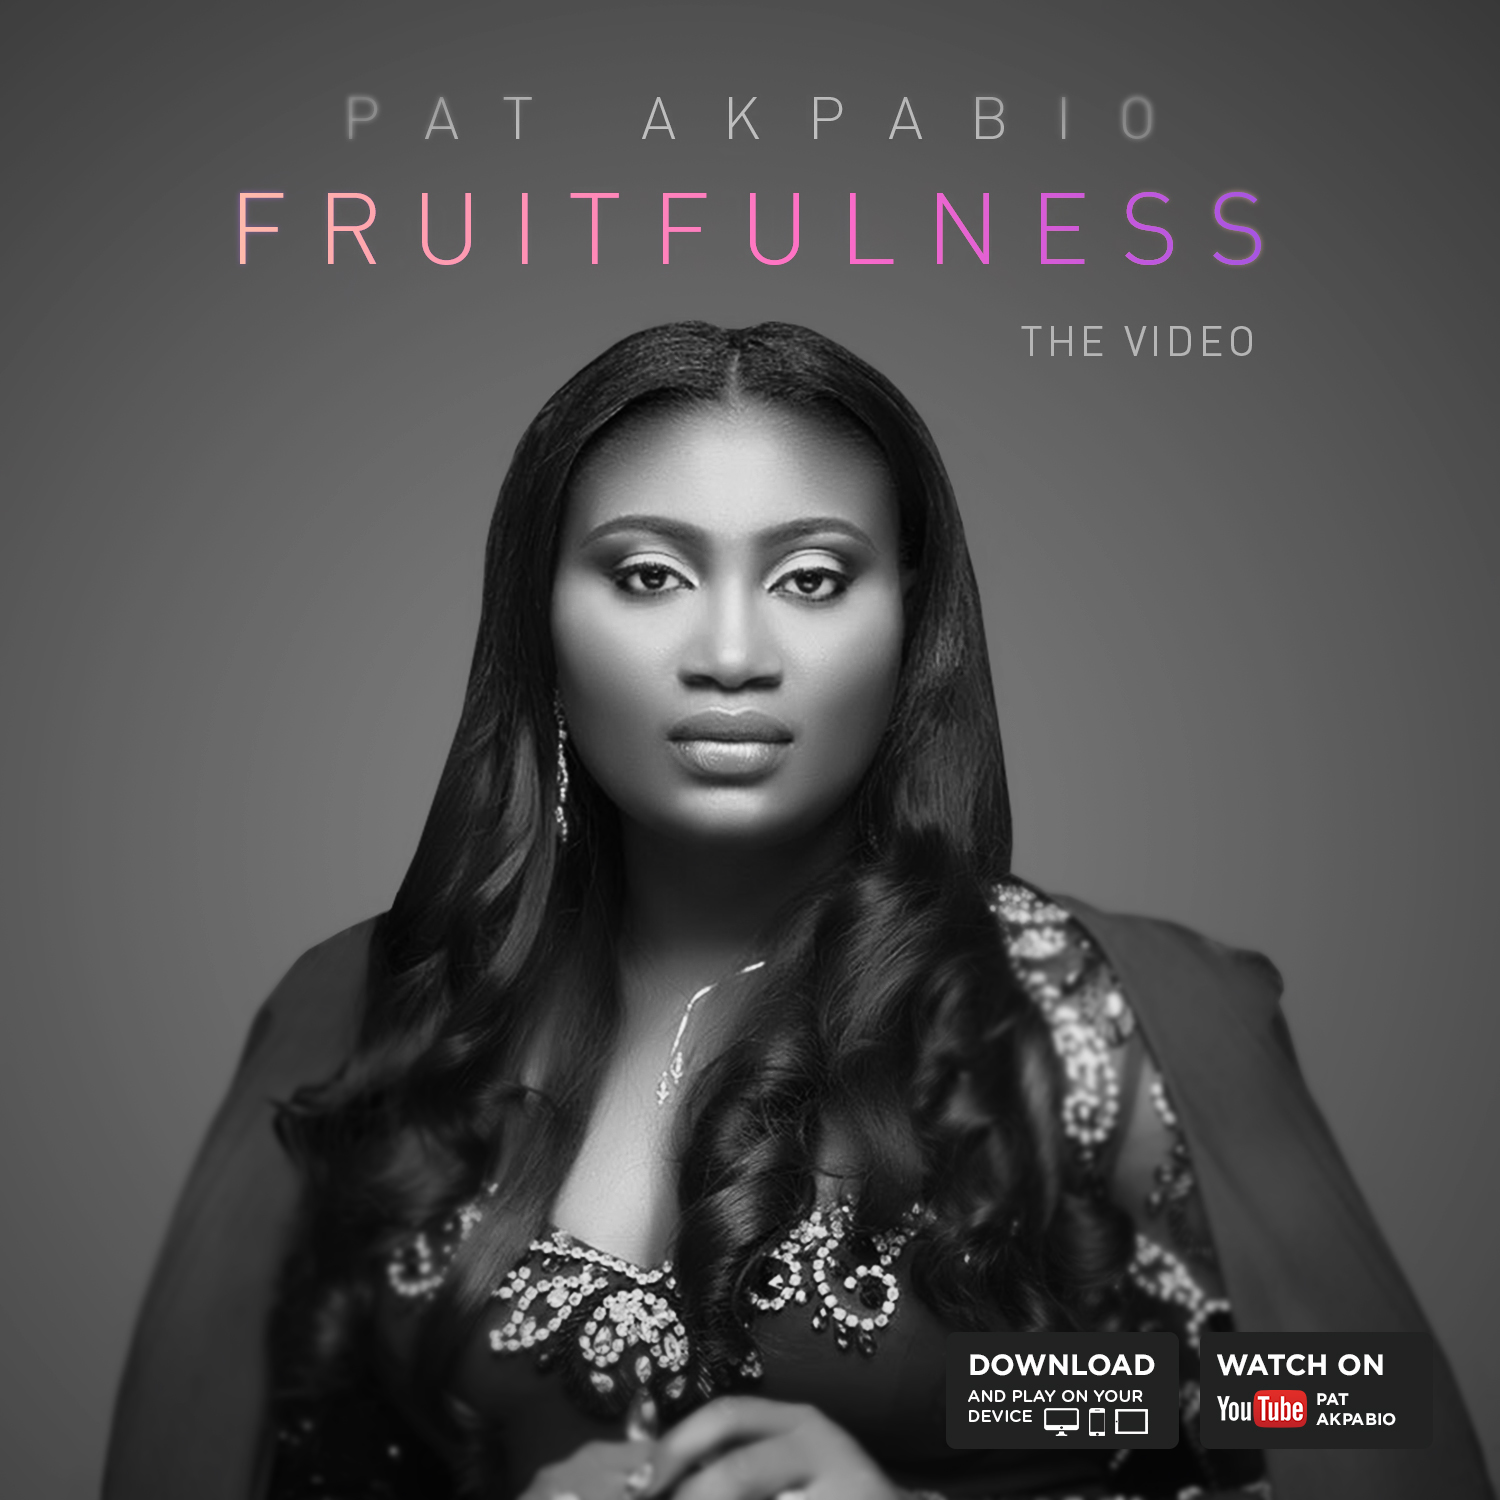 PAT AKPABIO Video Art